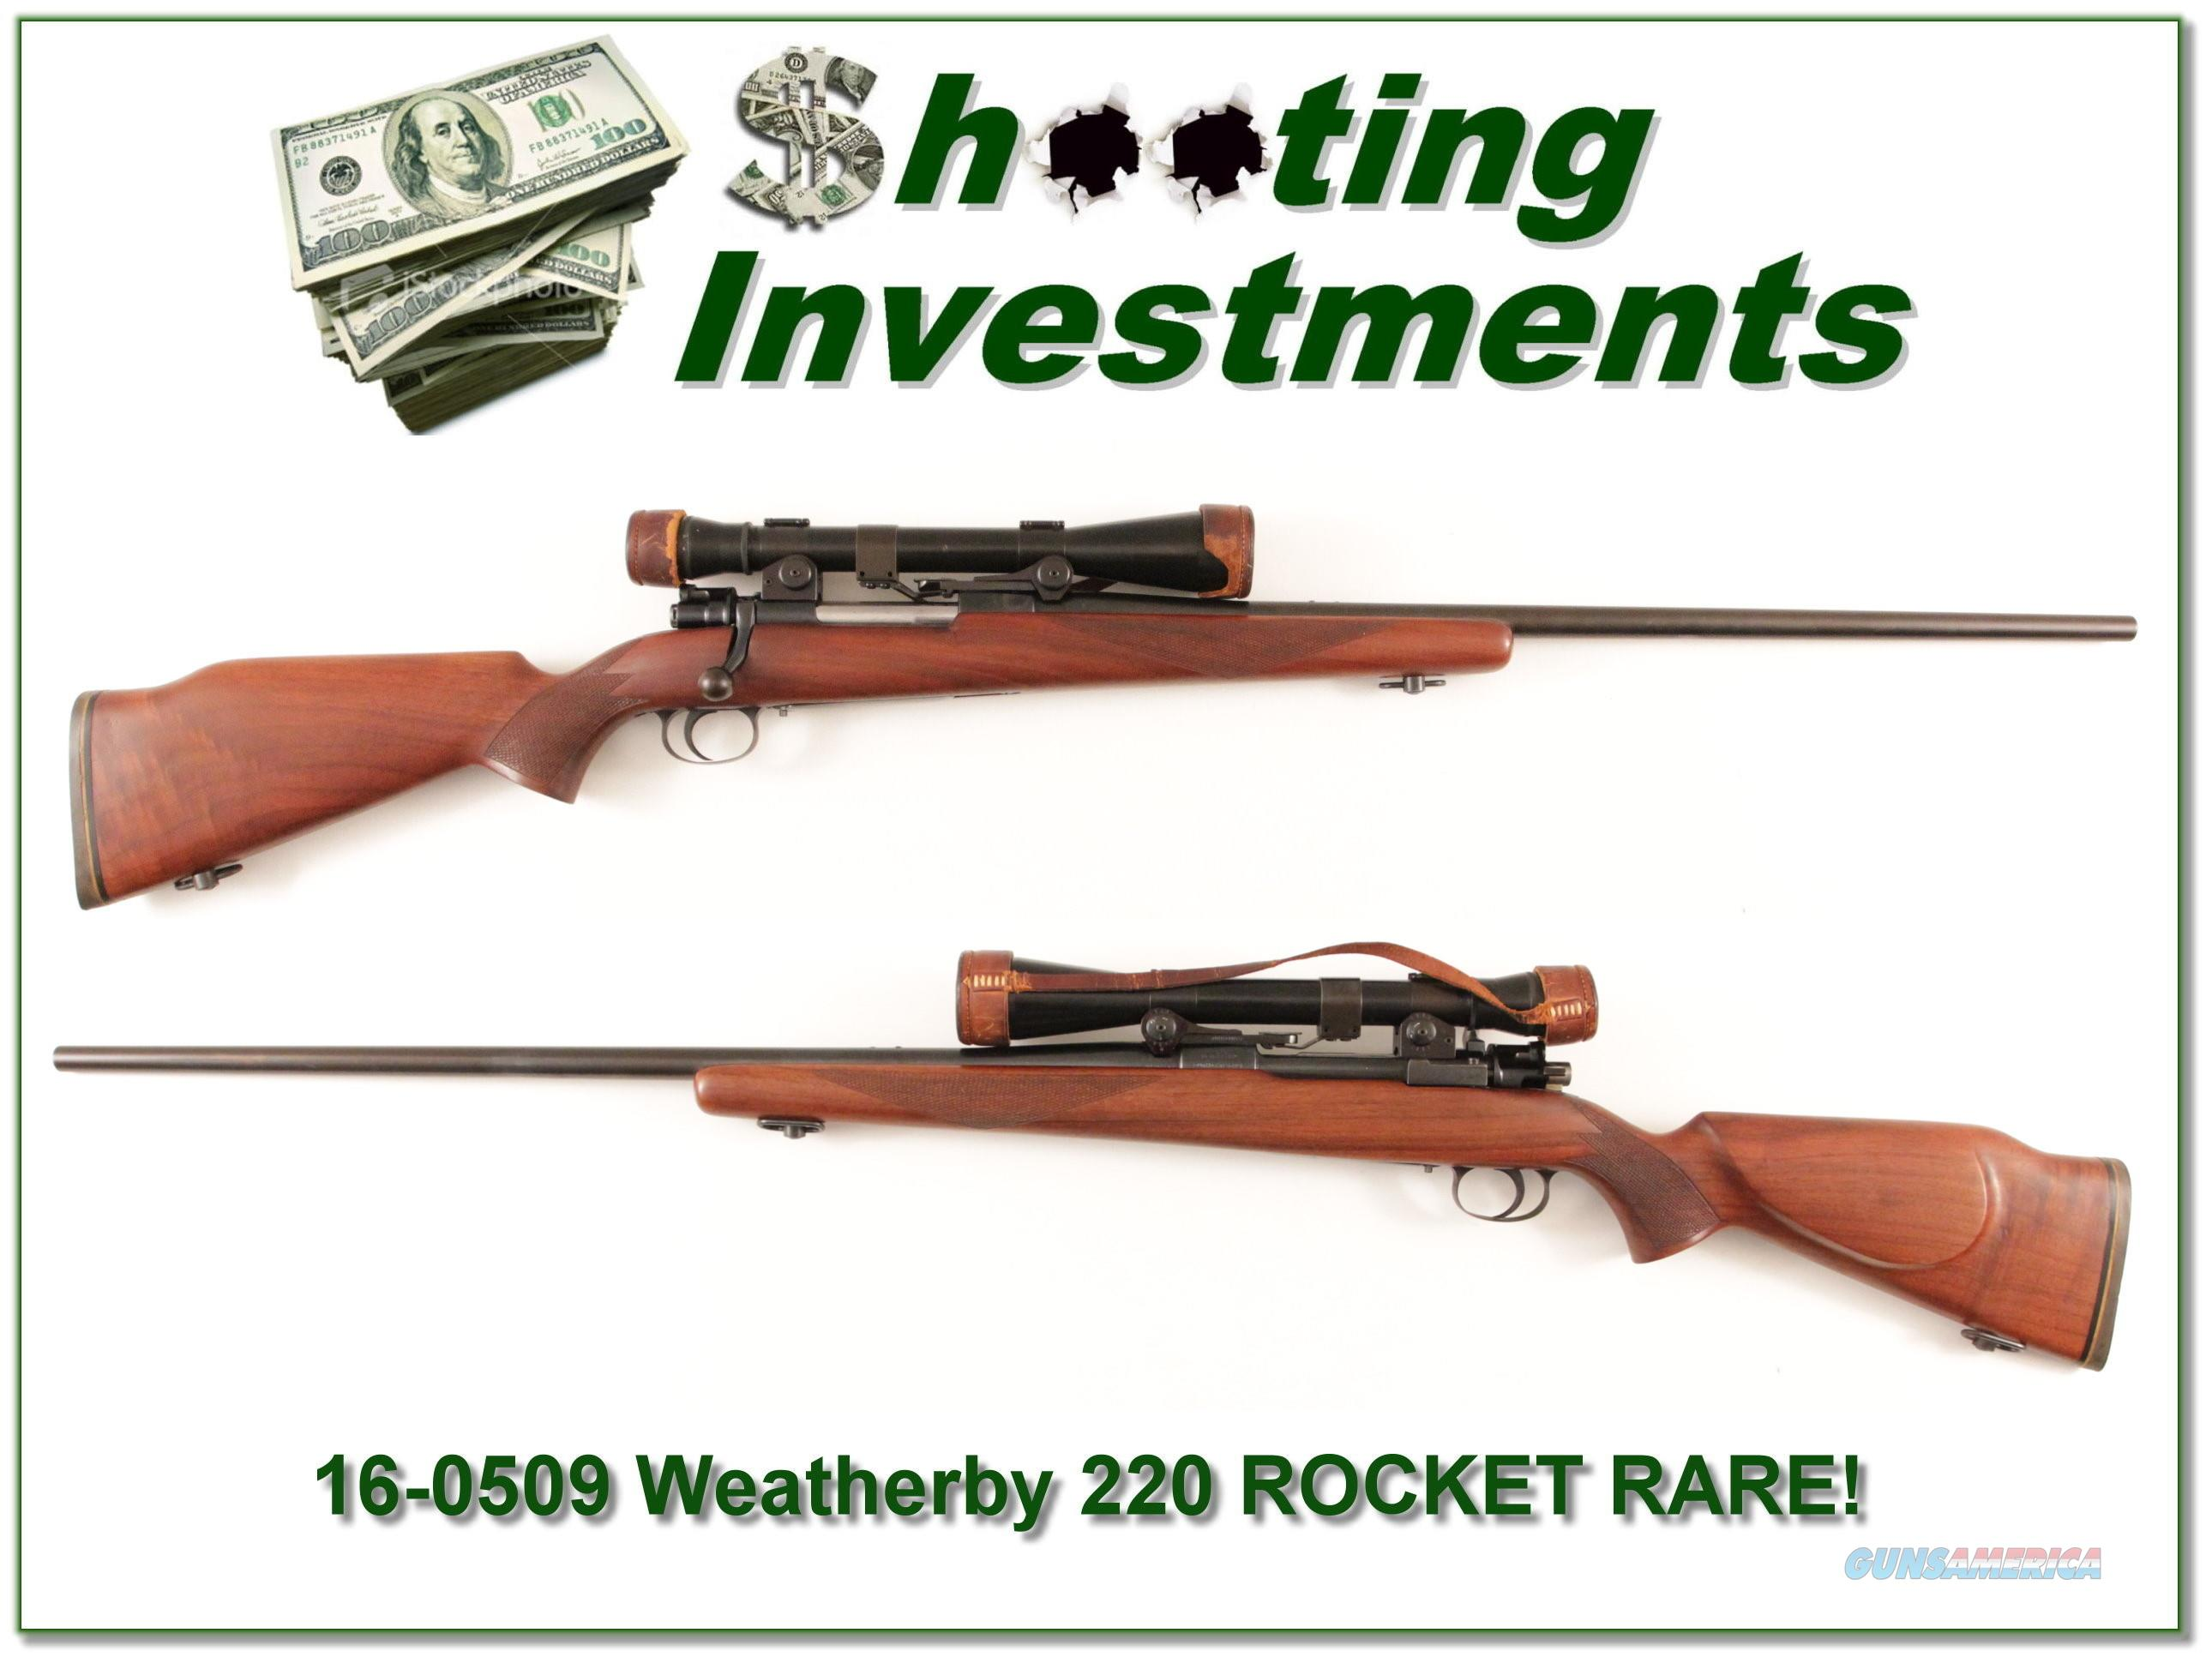 Weatherby RARE 220 Rocket!  Guns > Rifles > Weatherby Rifles > Sporting